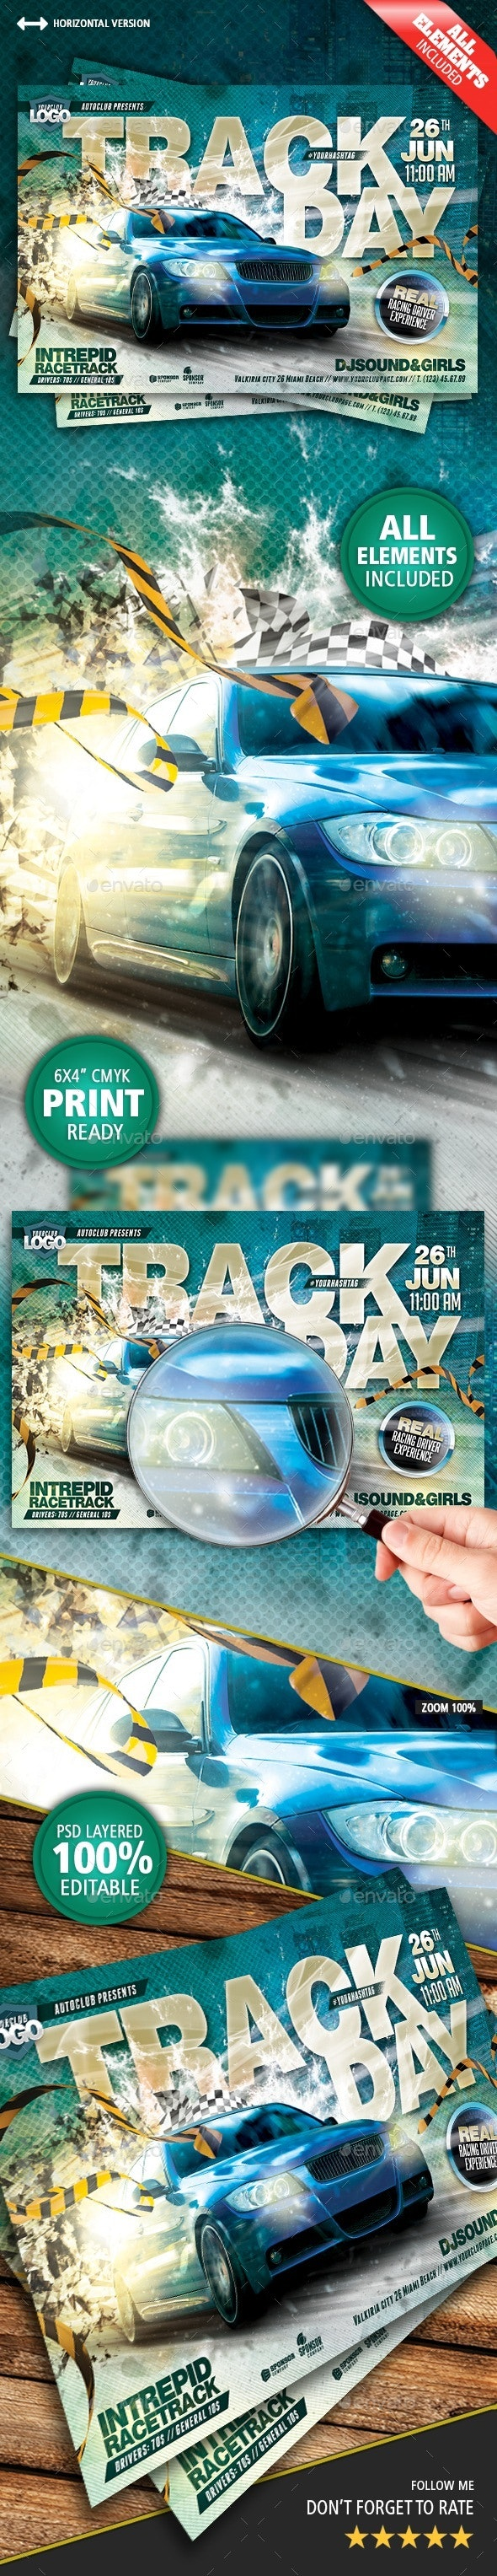 Track Day Flyer - Events Flyers